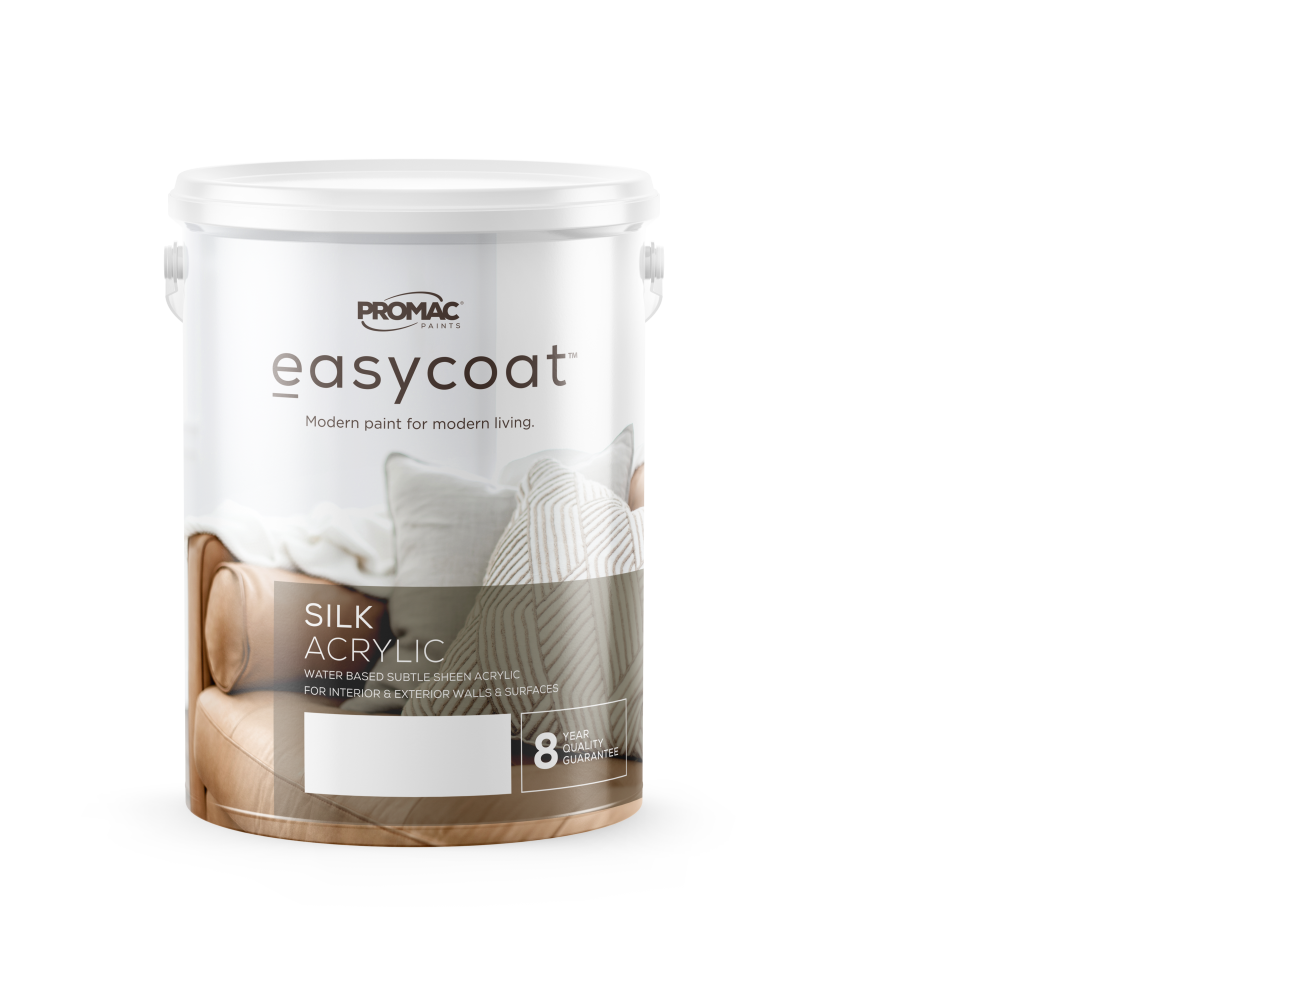 silk acrylic - WATER BASEDPromac Easycoat Silk is an acrylic wall coating, which has been specially formulated to decorate and protect interior and exterior surfaces.